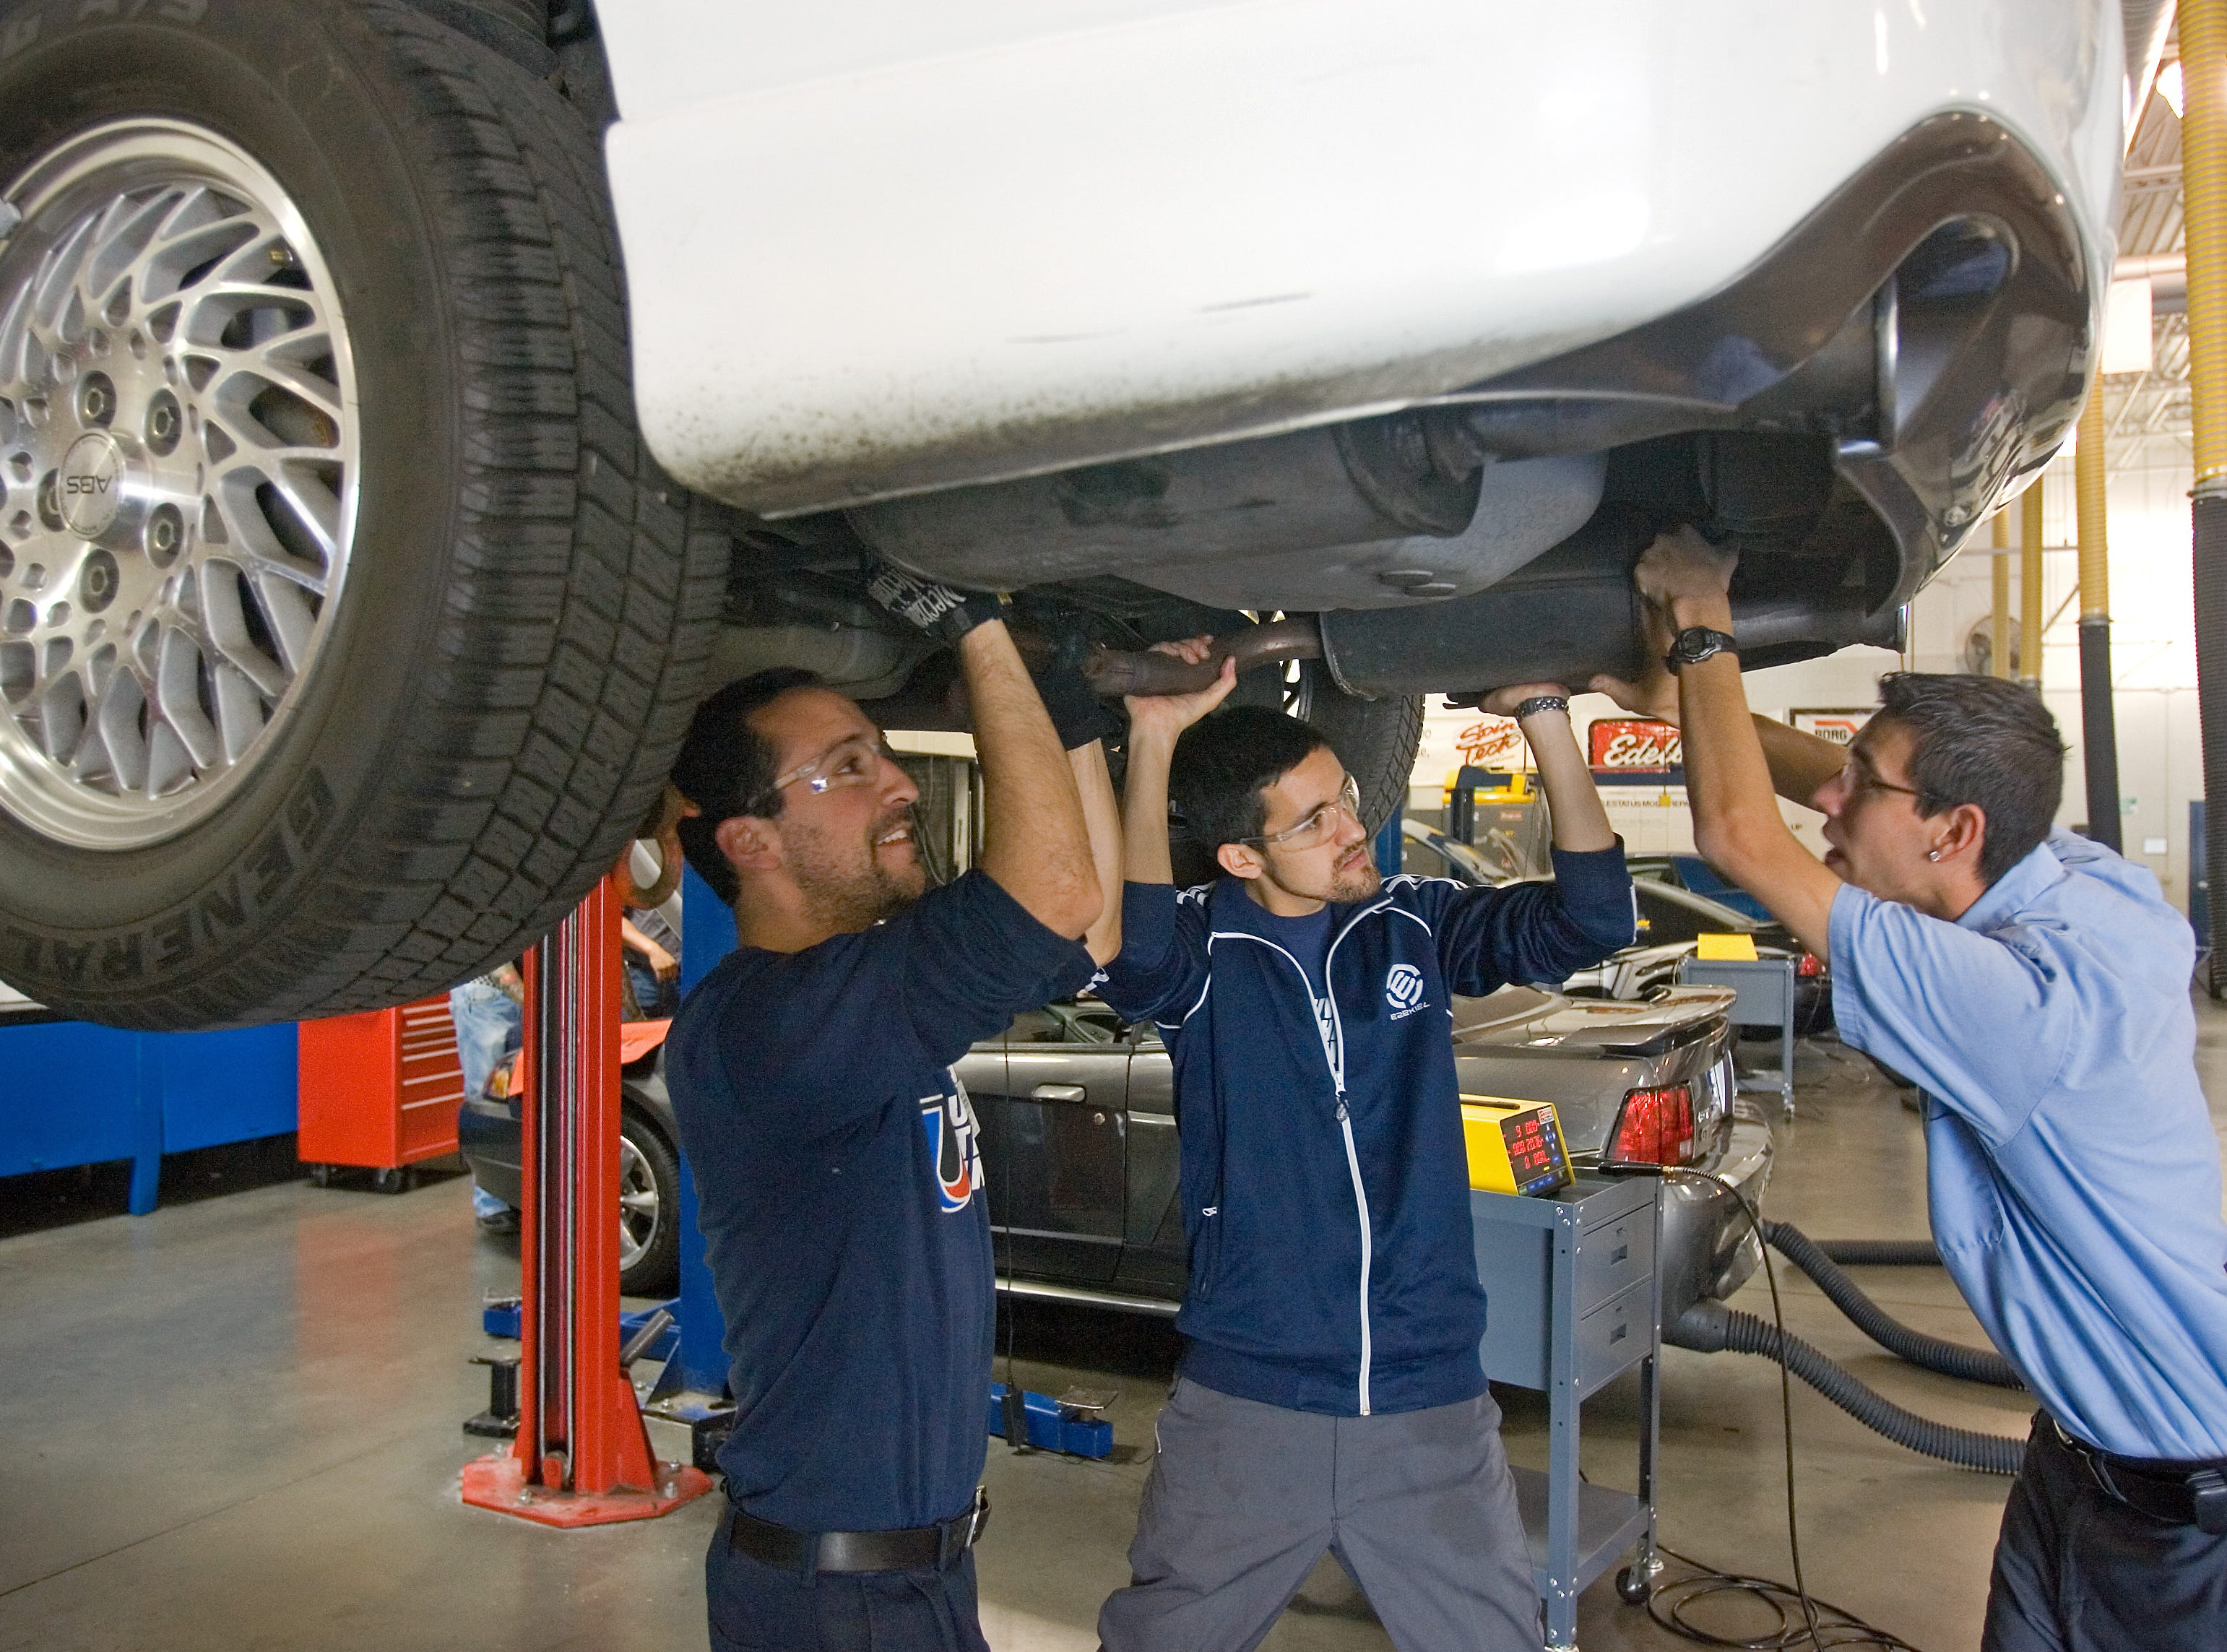 Students Moses Gonzales, Rick Carrera and Jose Becerra remove a muffler during a class at the Universal Technical Institute in April 2008.